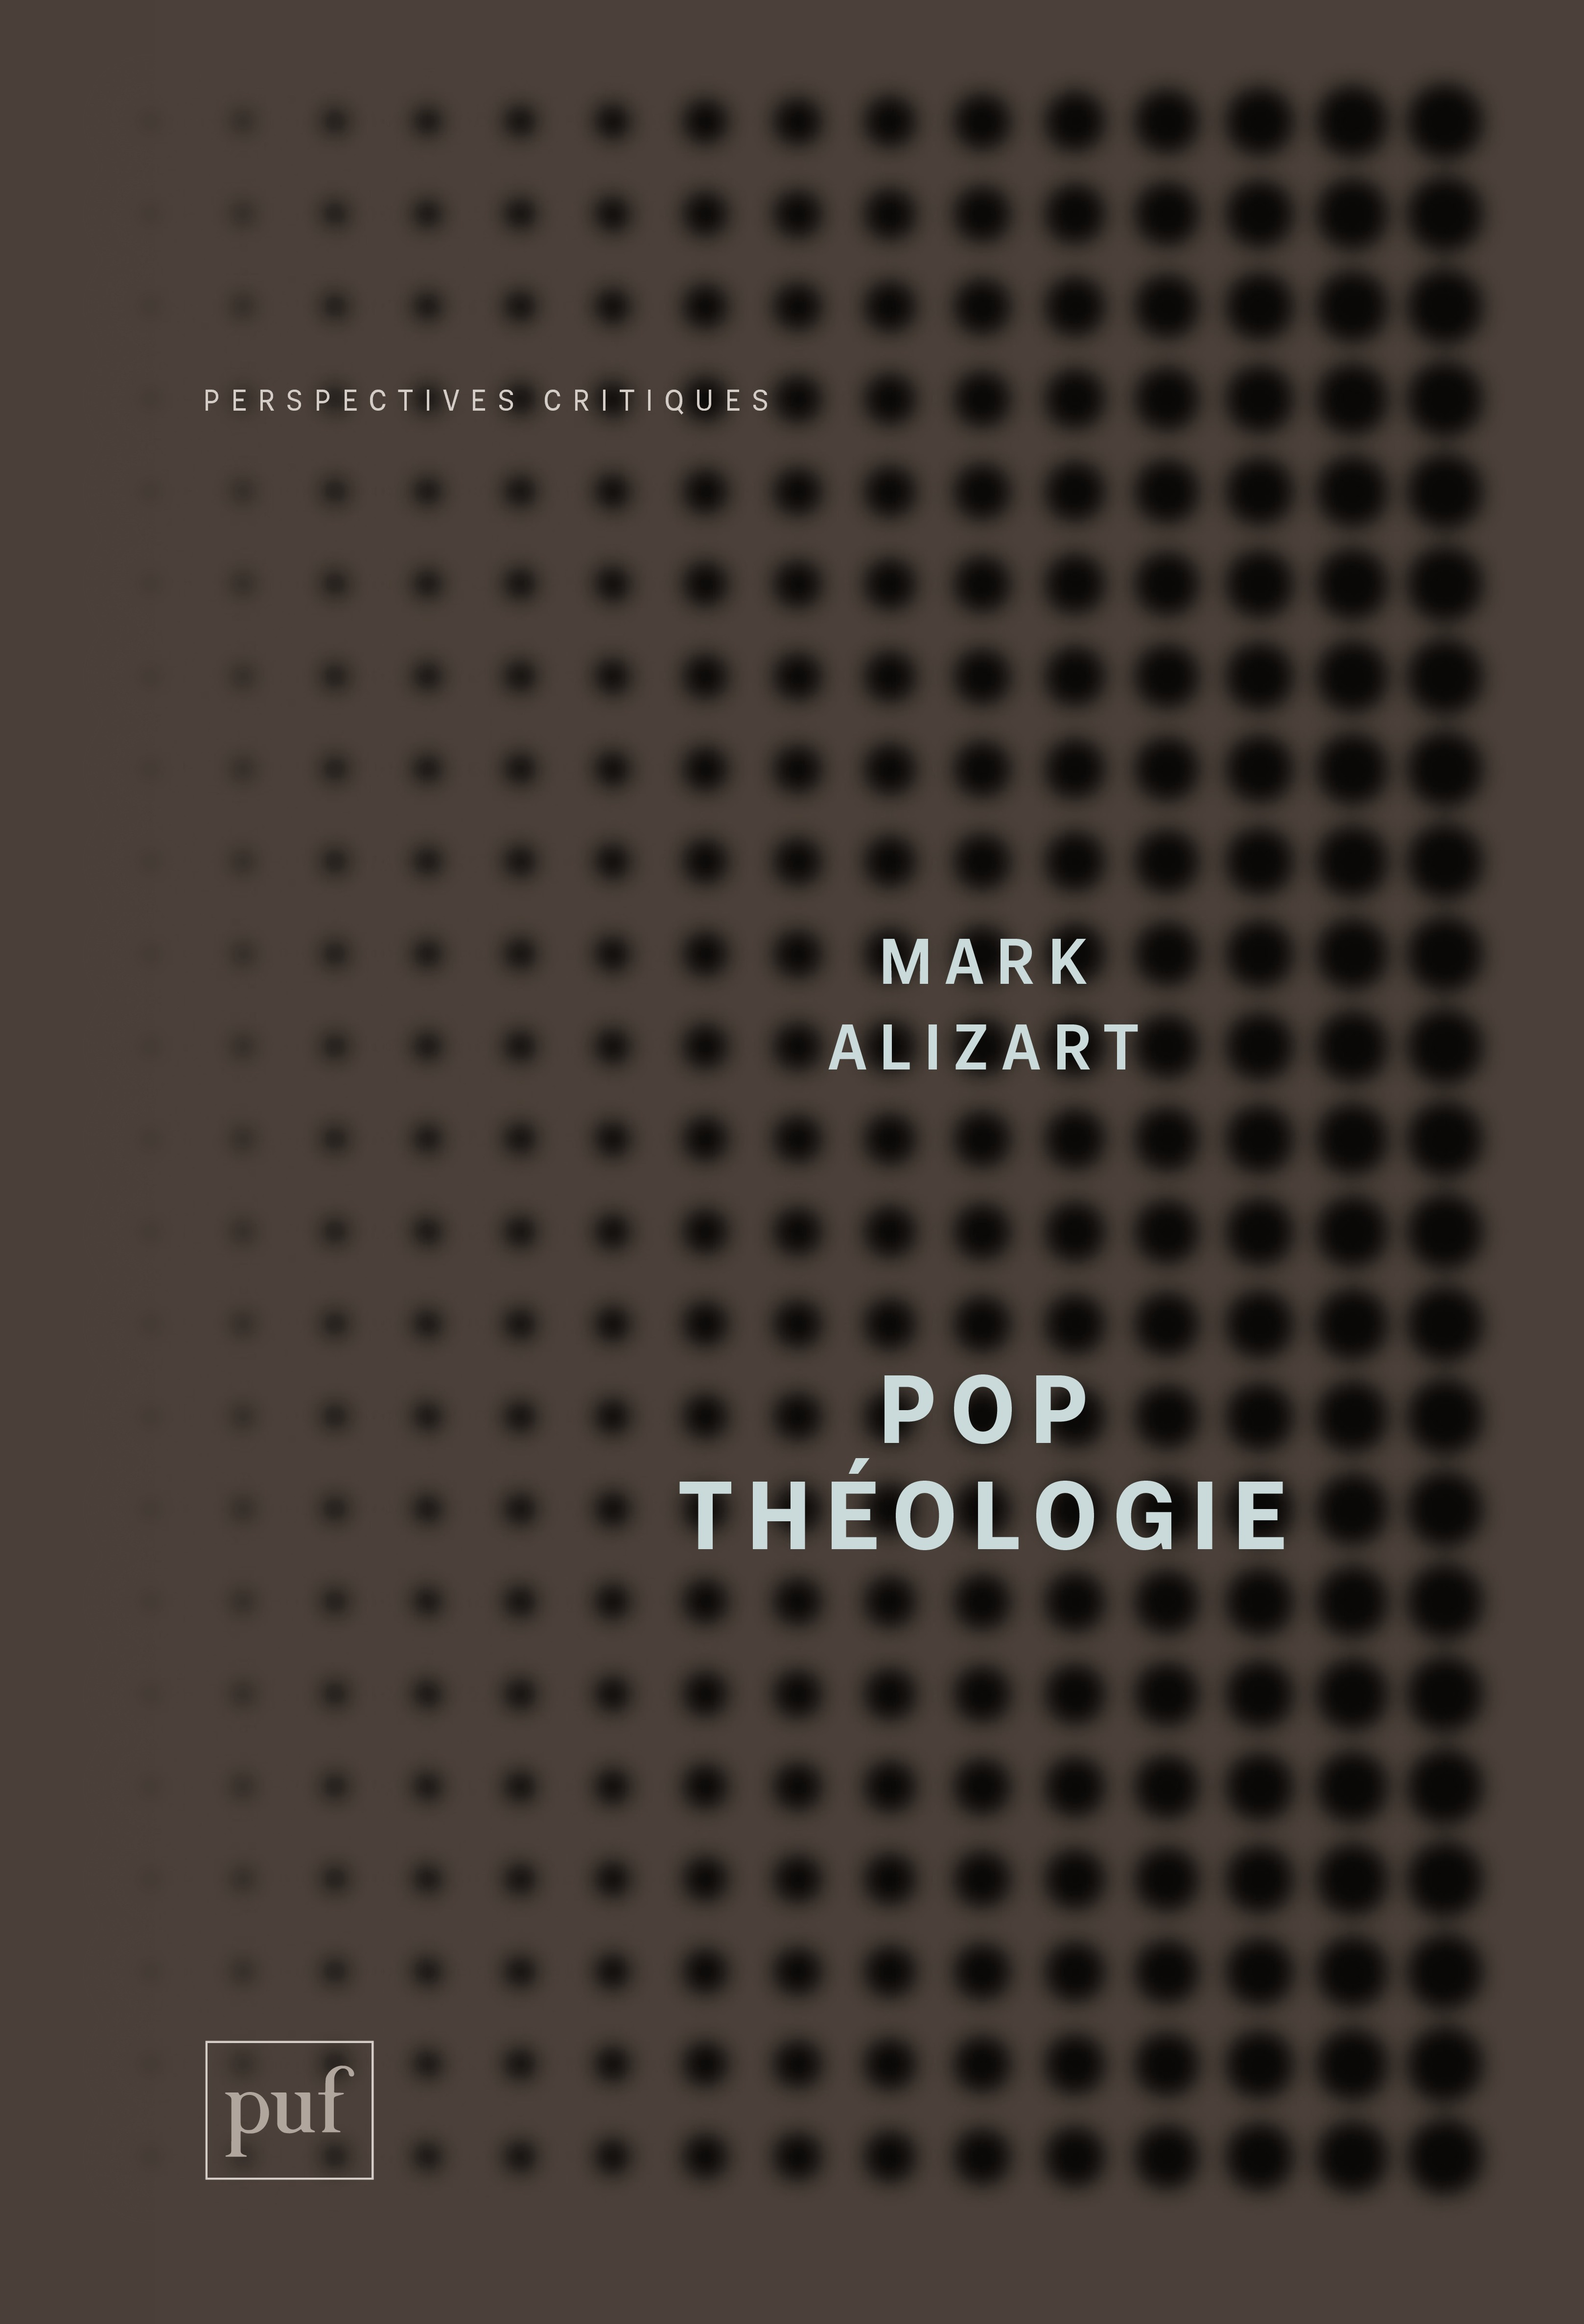 Mark Alizart Pop théologie